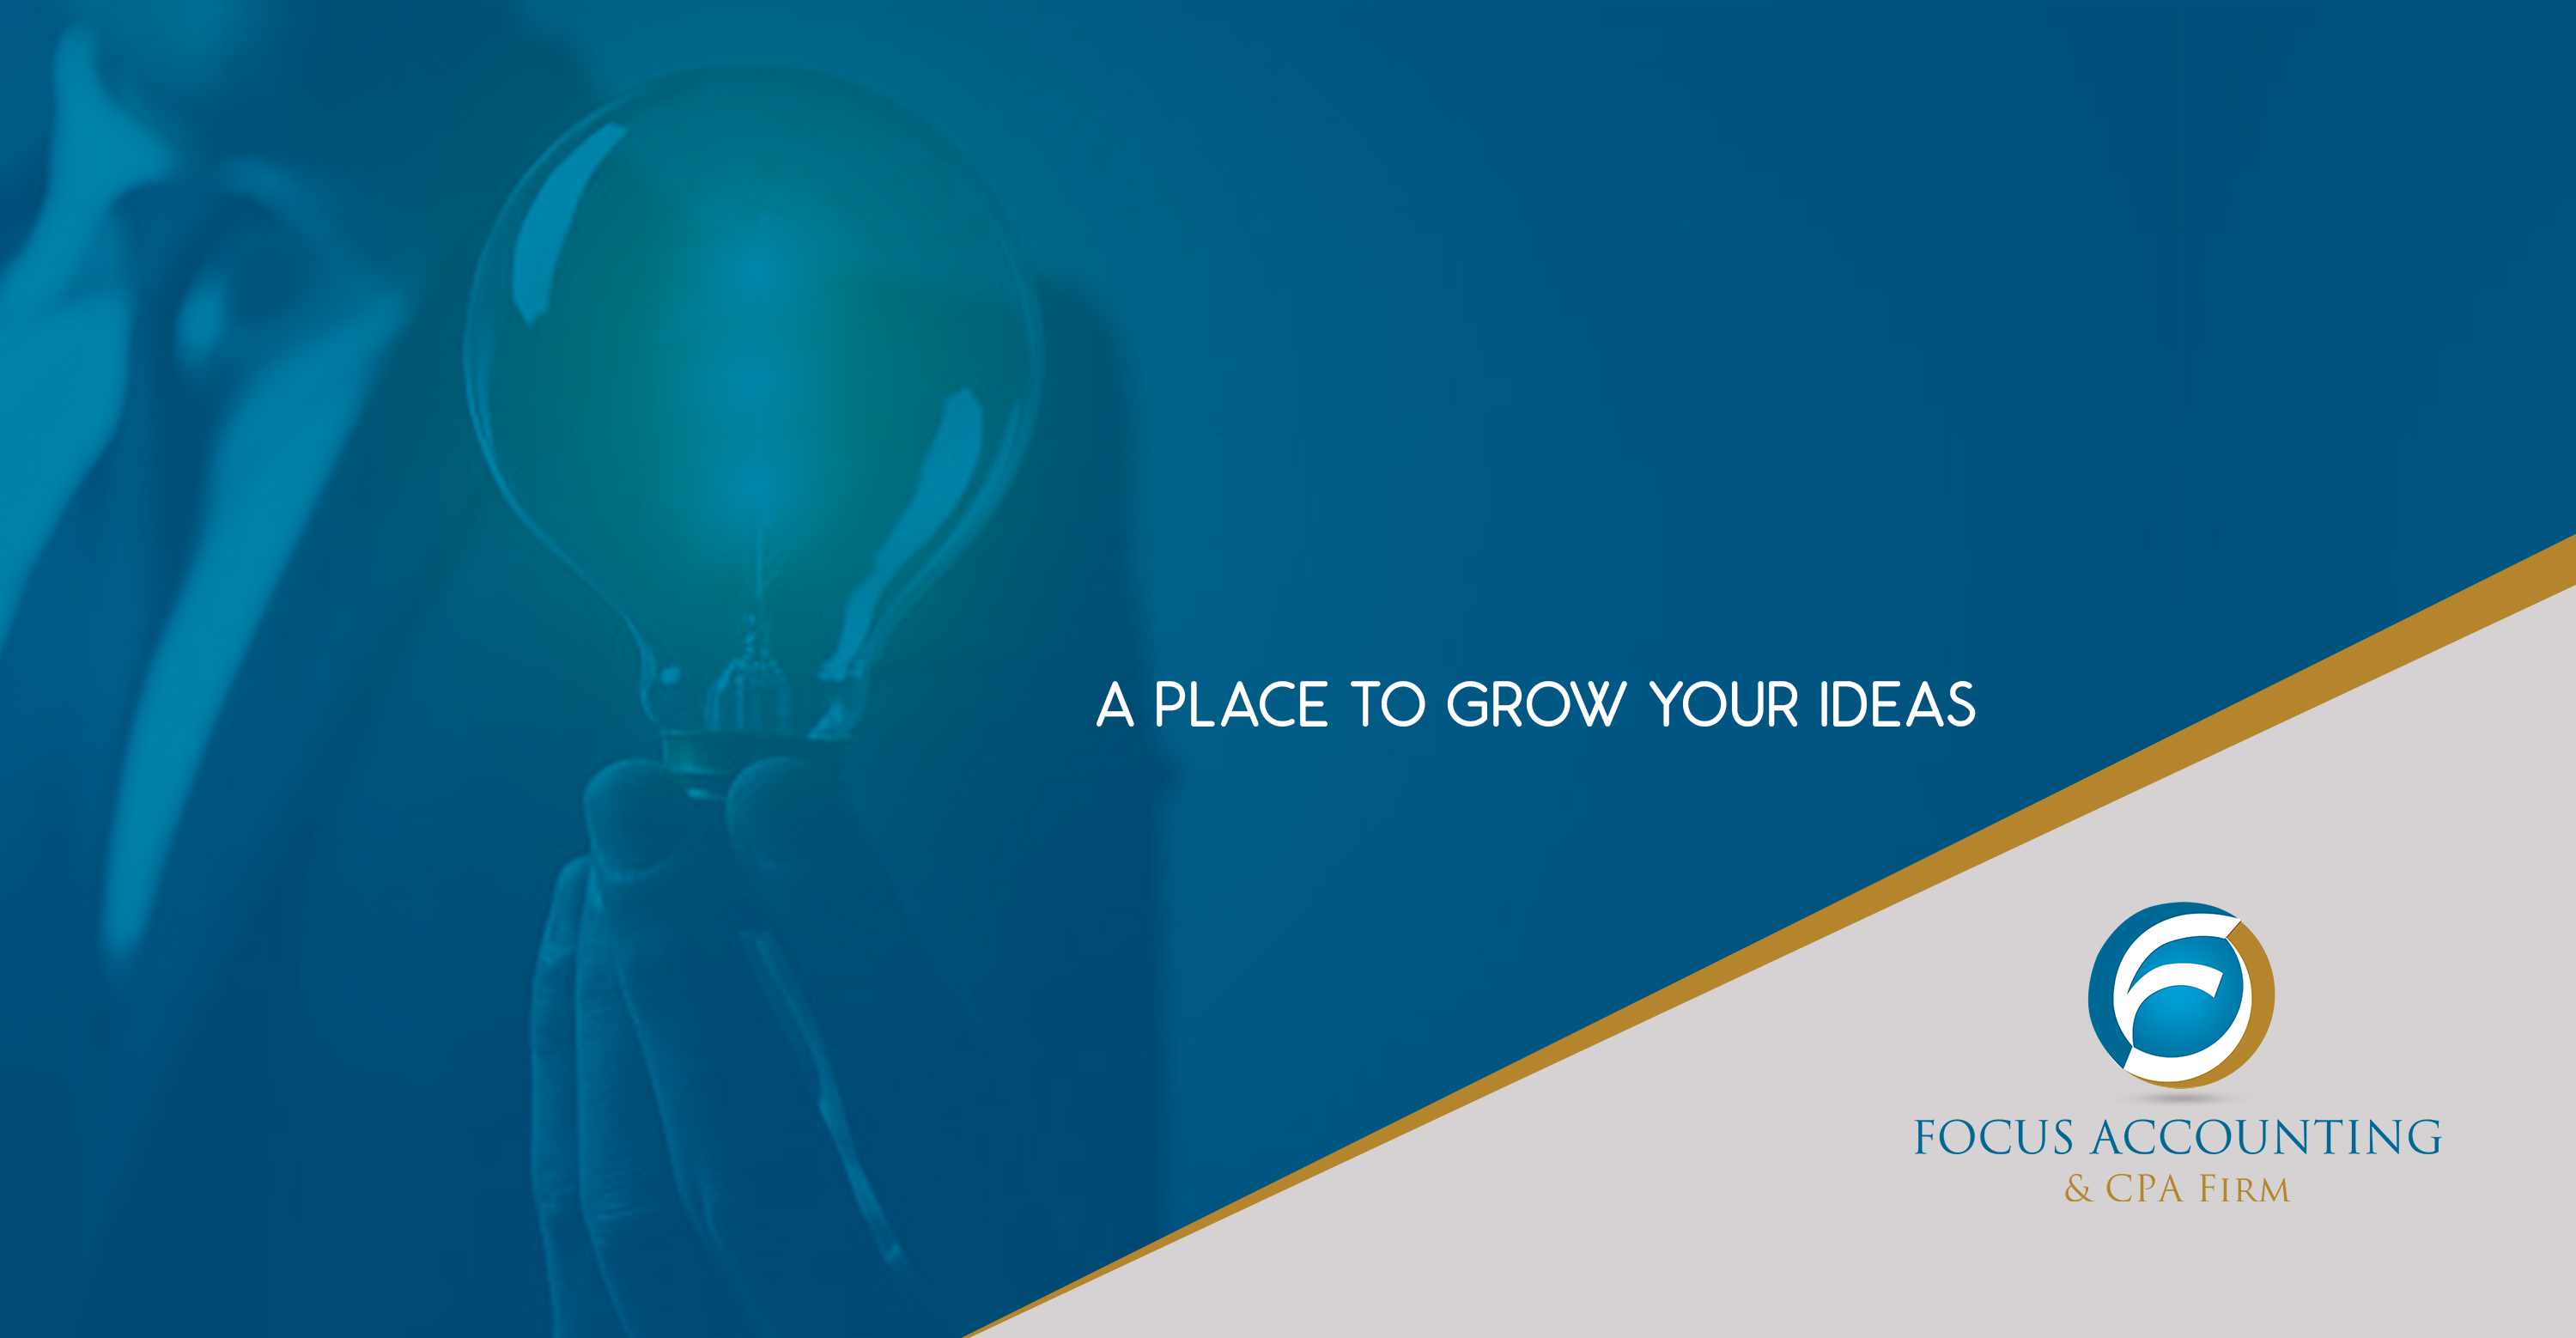 A place to grow your ideas